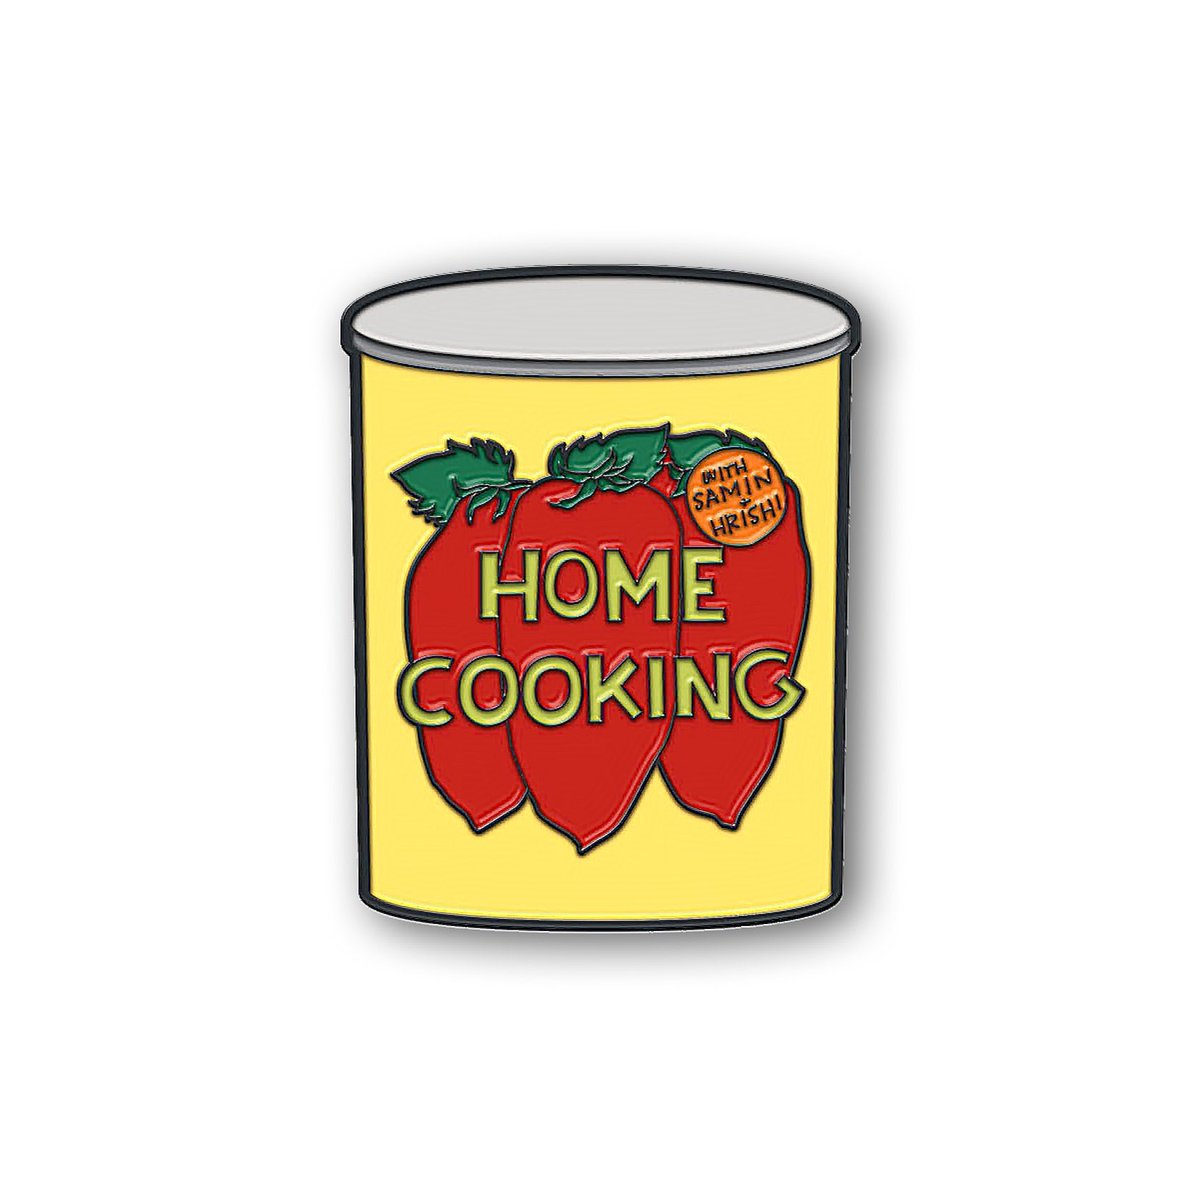 .@HrishiHirway and I are doing a little fundraiser!   Buy a sweet enamel HOME COOKING fridge magnet for $10 and we'll send every penny of profit to@nokidhungry!   Go to https://t.co/DGiiBbULN9 🧲 ❤️ https://t.co/SBR9saDTRm